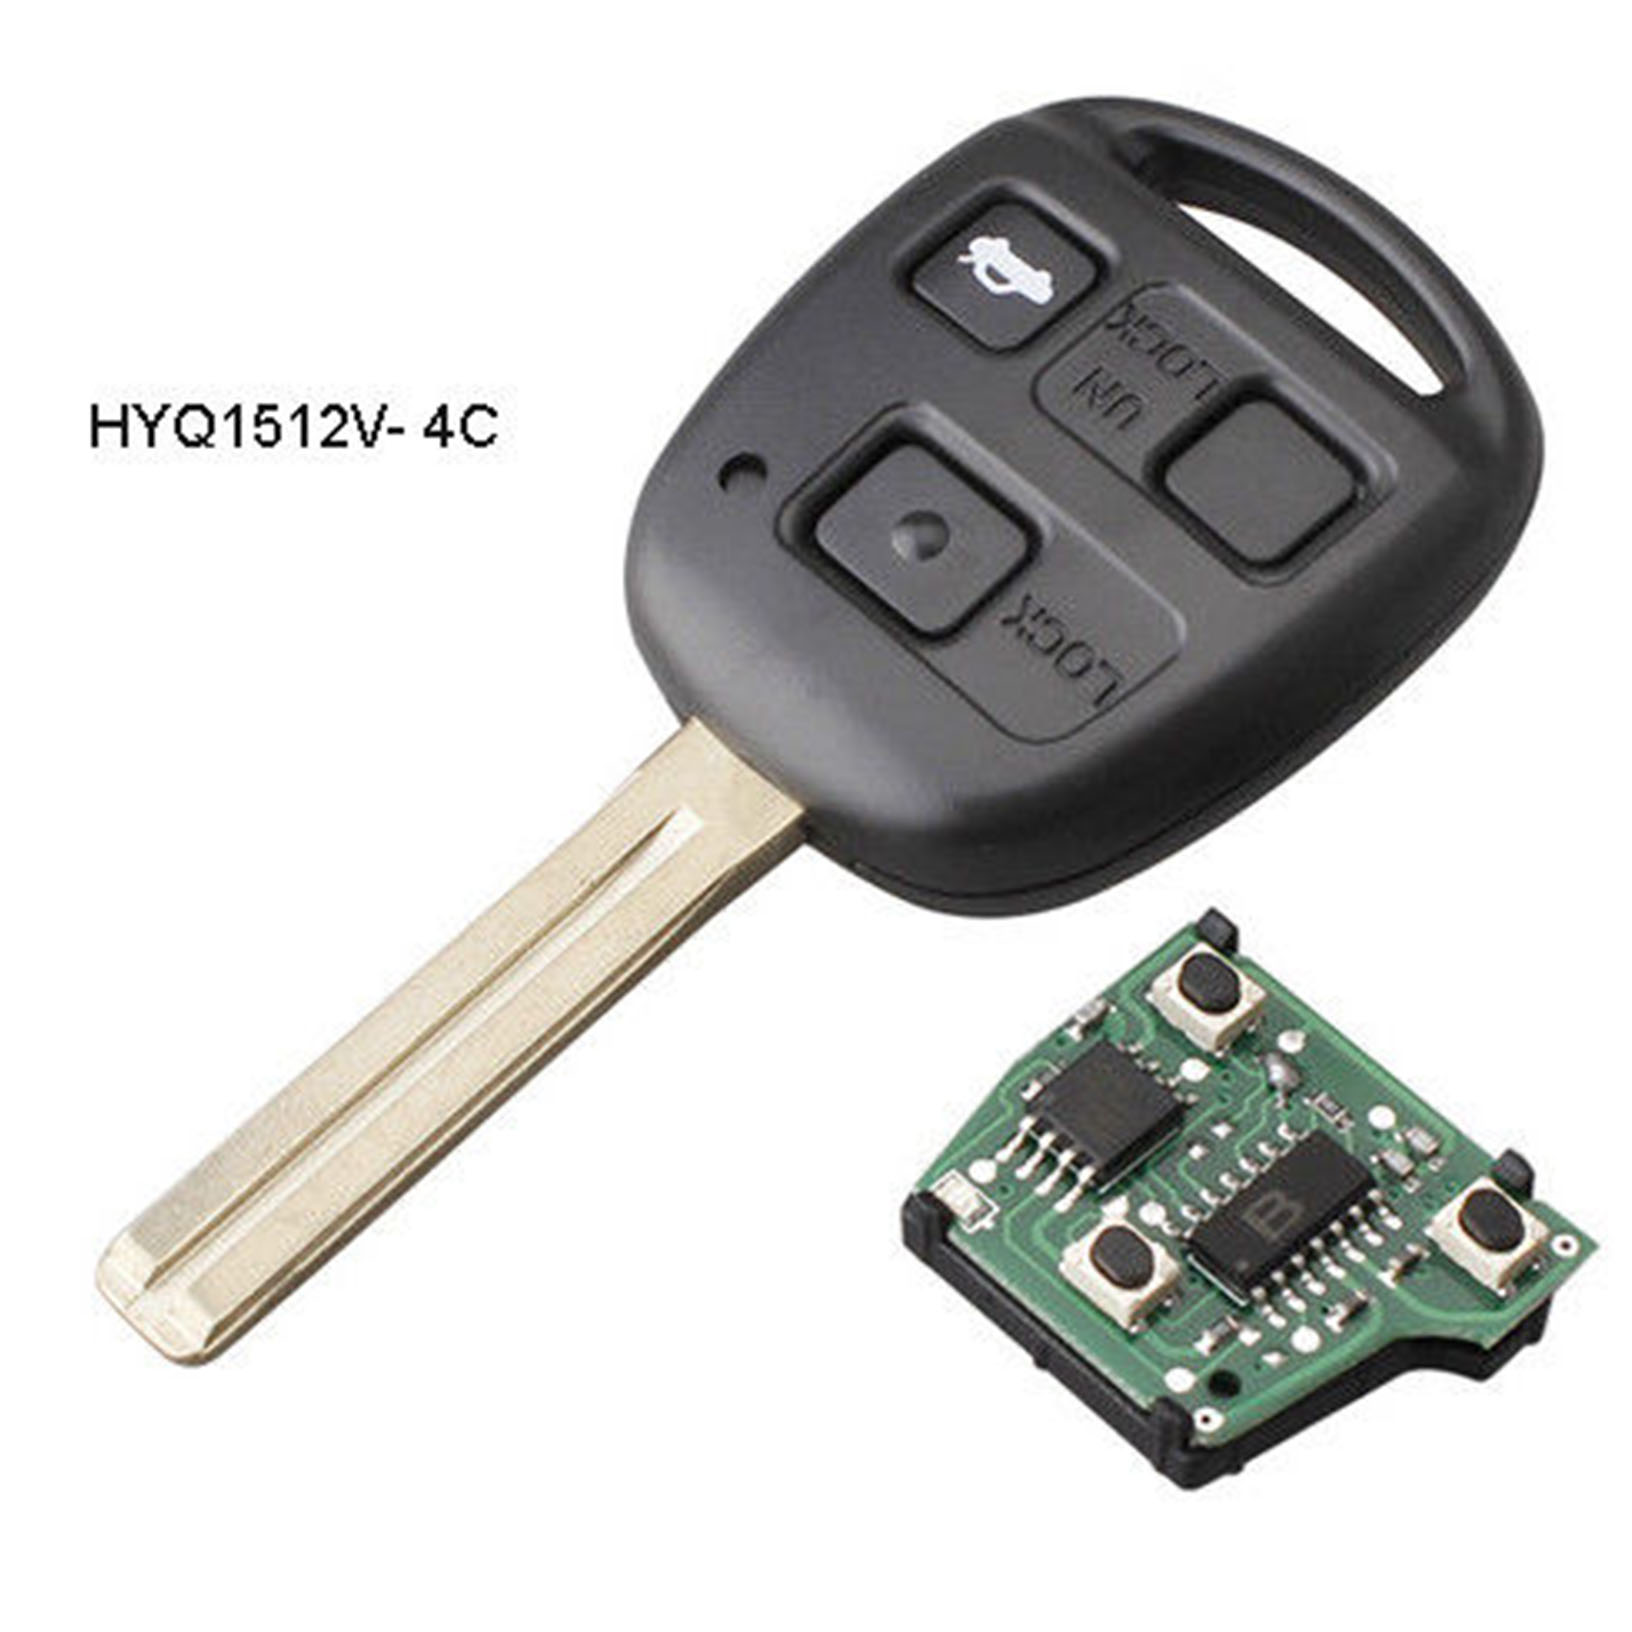 Car Key Fob Keyless Entry Remote fits Lexus 2001-2002 LX470 HYQ1512V